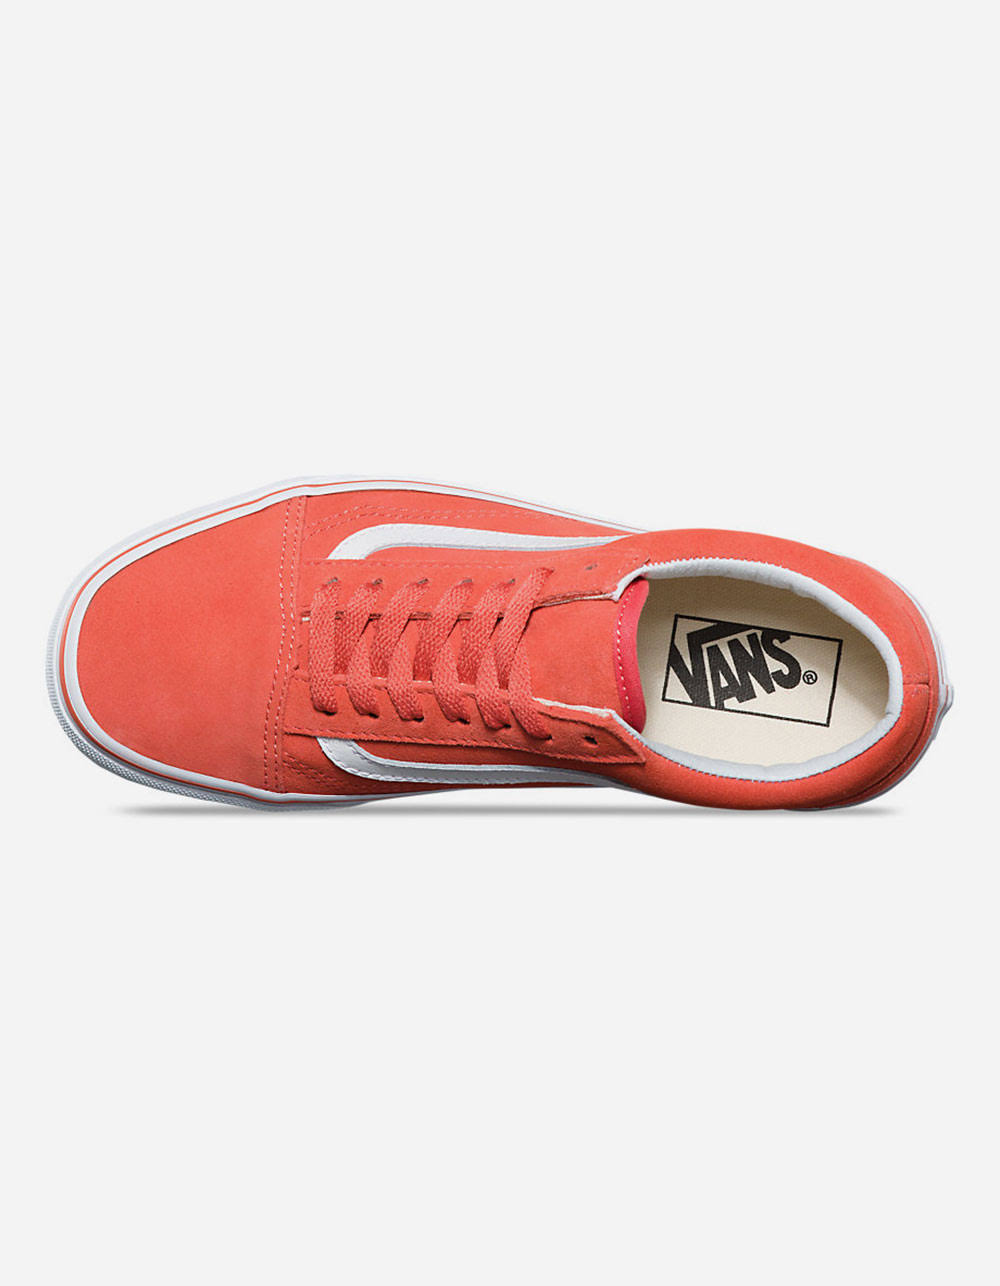 Old Mujer 4 True White 5 Tamaño Coral Skool Zapatos Spiced De Vans BS4qdd